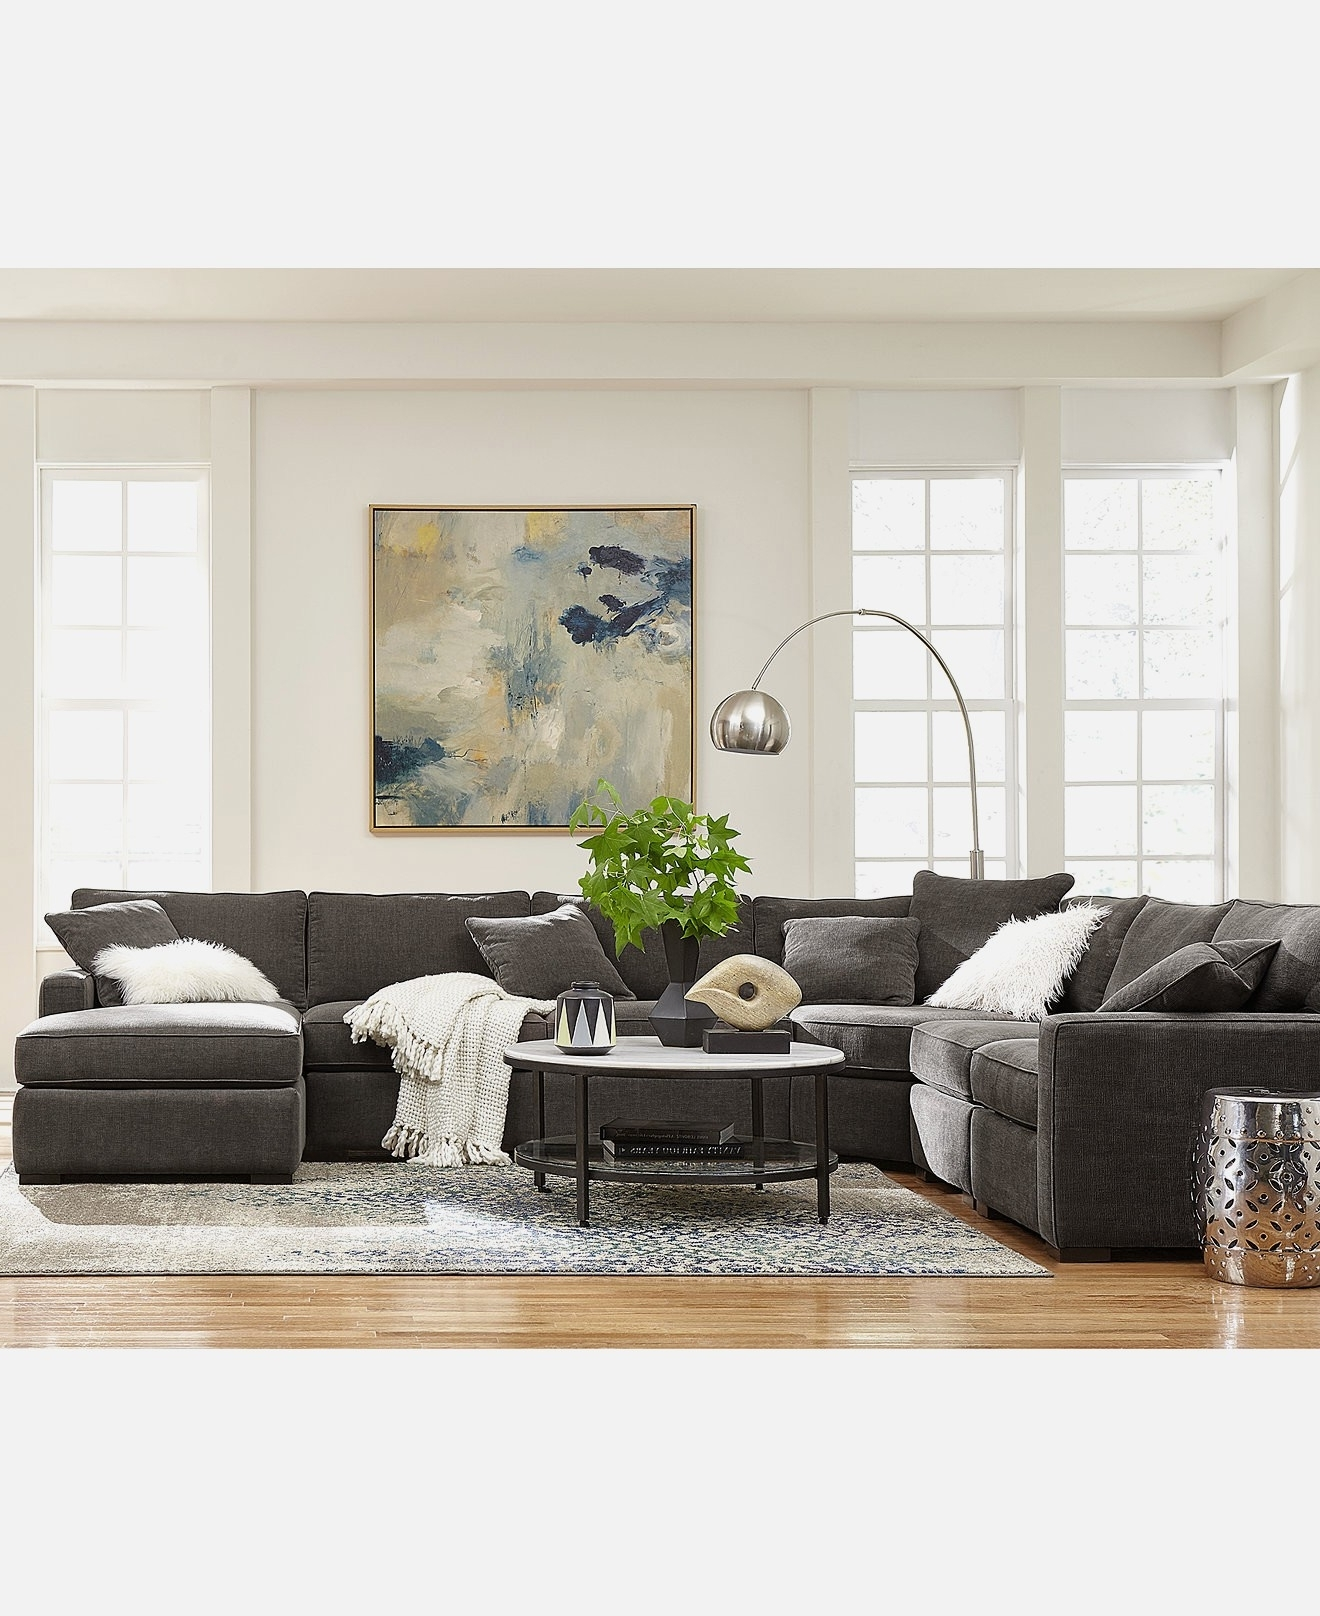 Macys Wall Art Within Recent Sofas: Mesmerizing Macys Sectional Sofa For Best Living Room Decor (View 9 of 15)